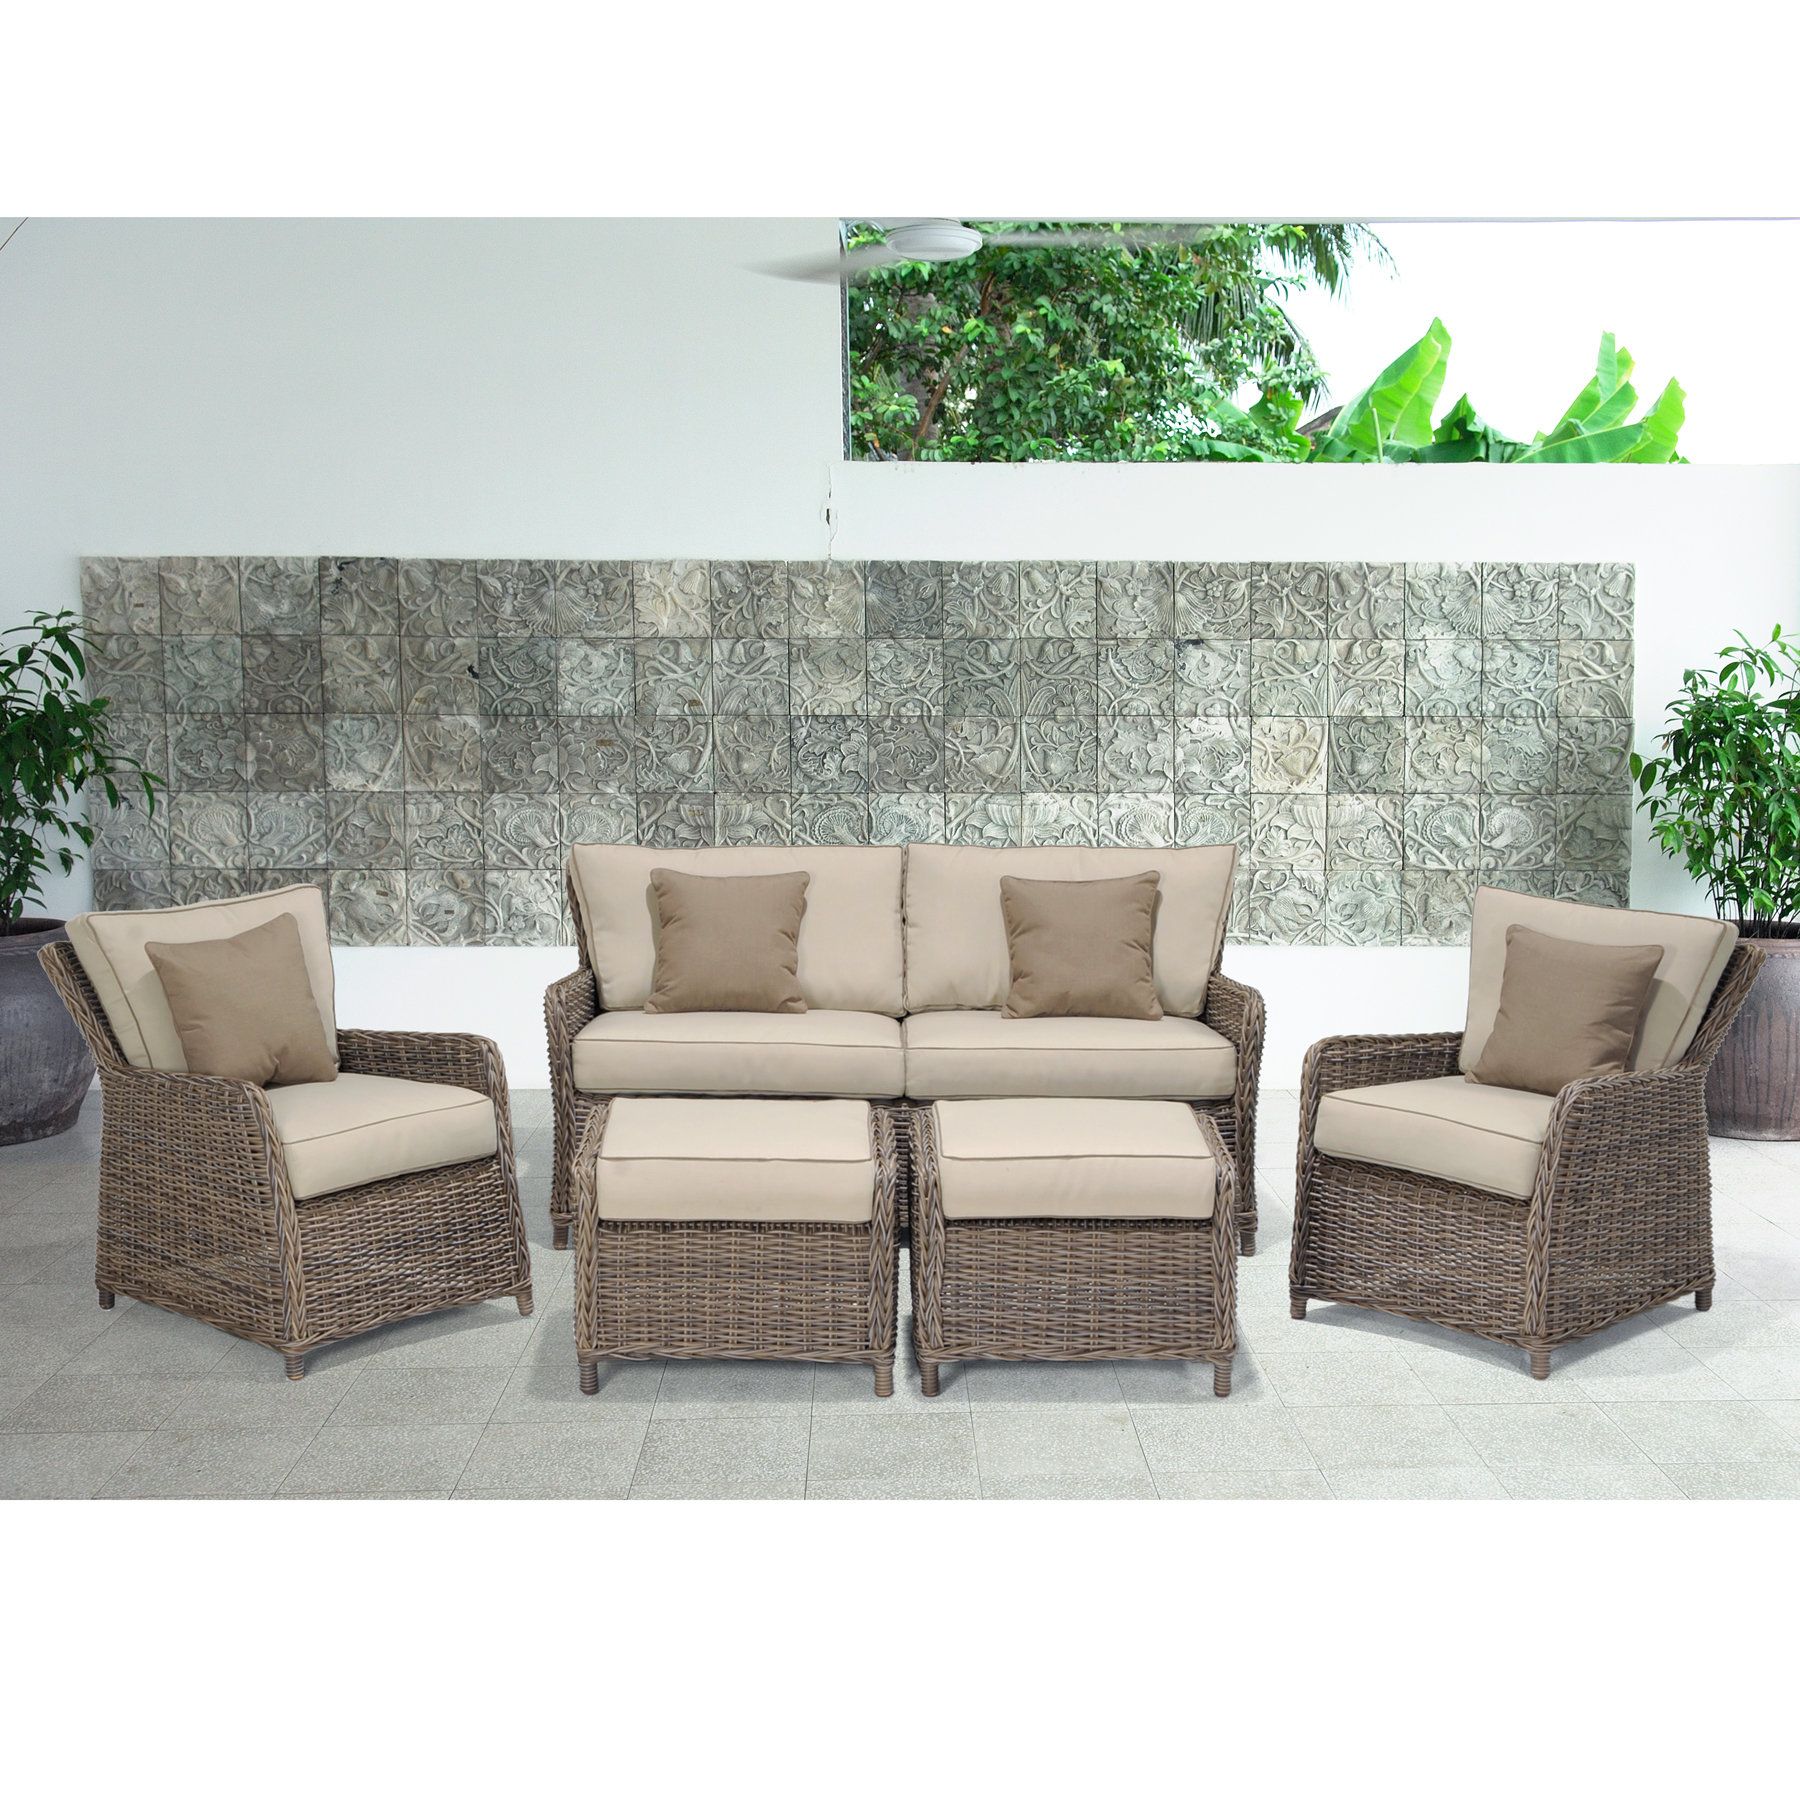 Avadi Outdoor 5 Piece Sofa Seating Group For Well Known Avadi Outdoor Sofas & Ottomans 3 Piece Set (Gallery 2 of 25)